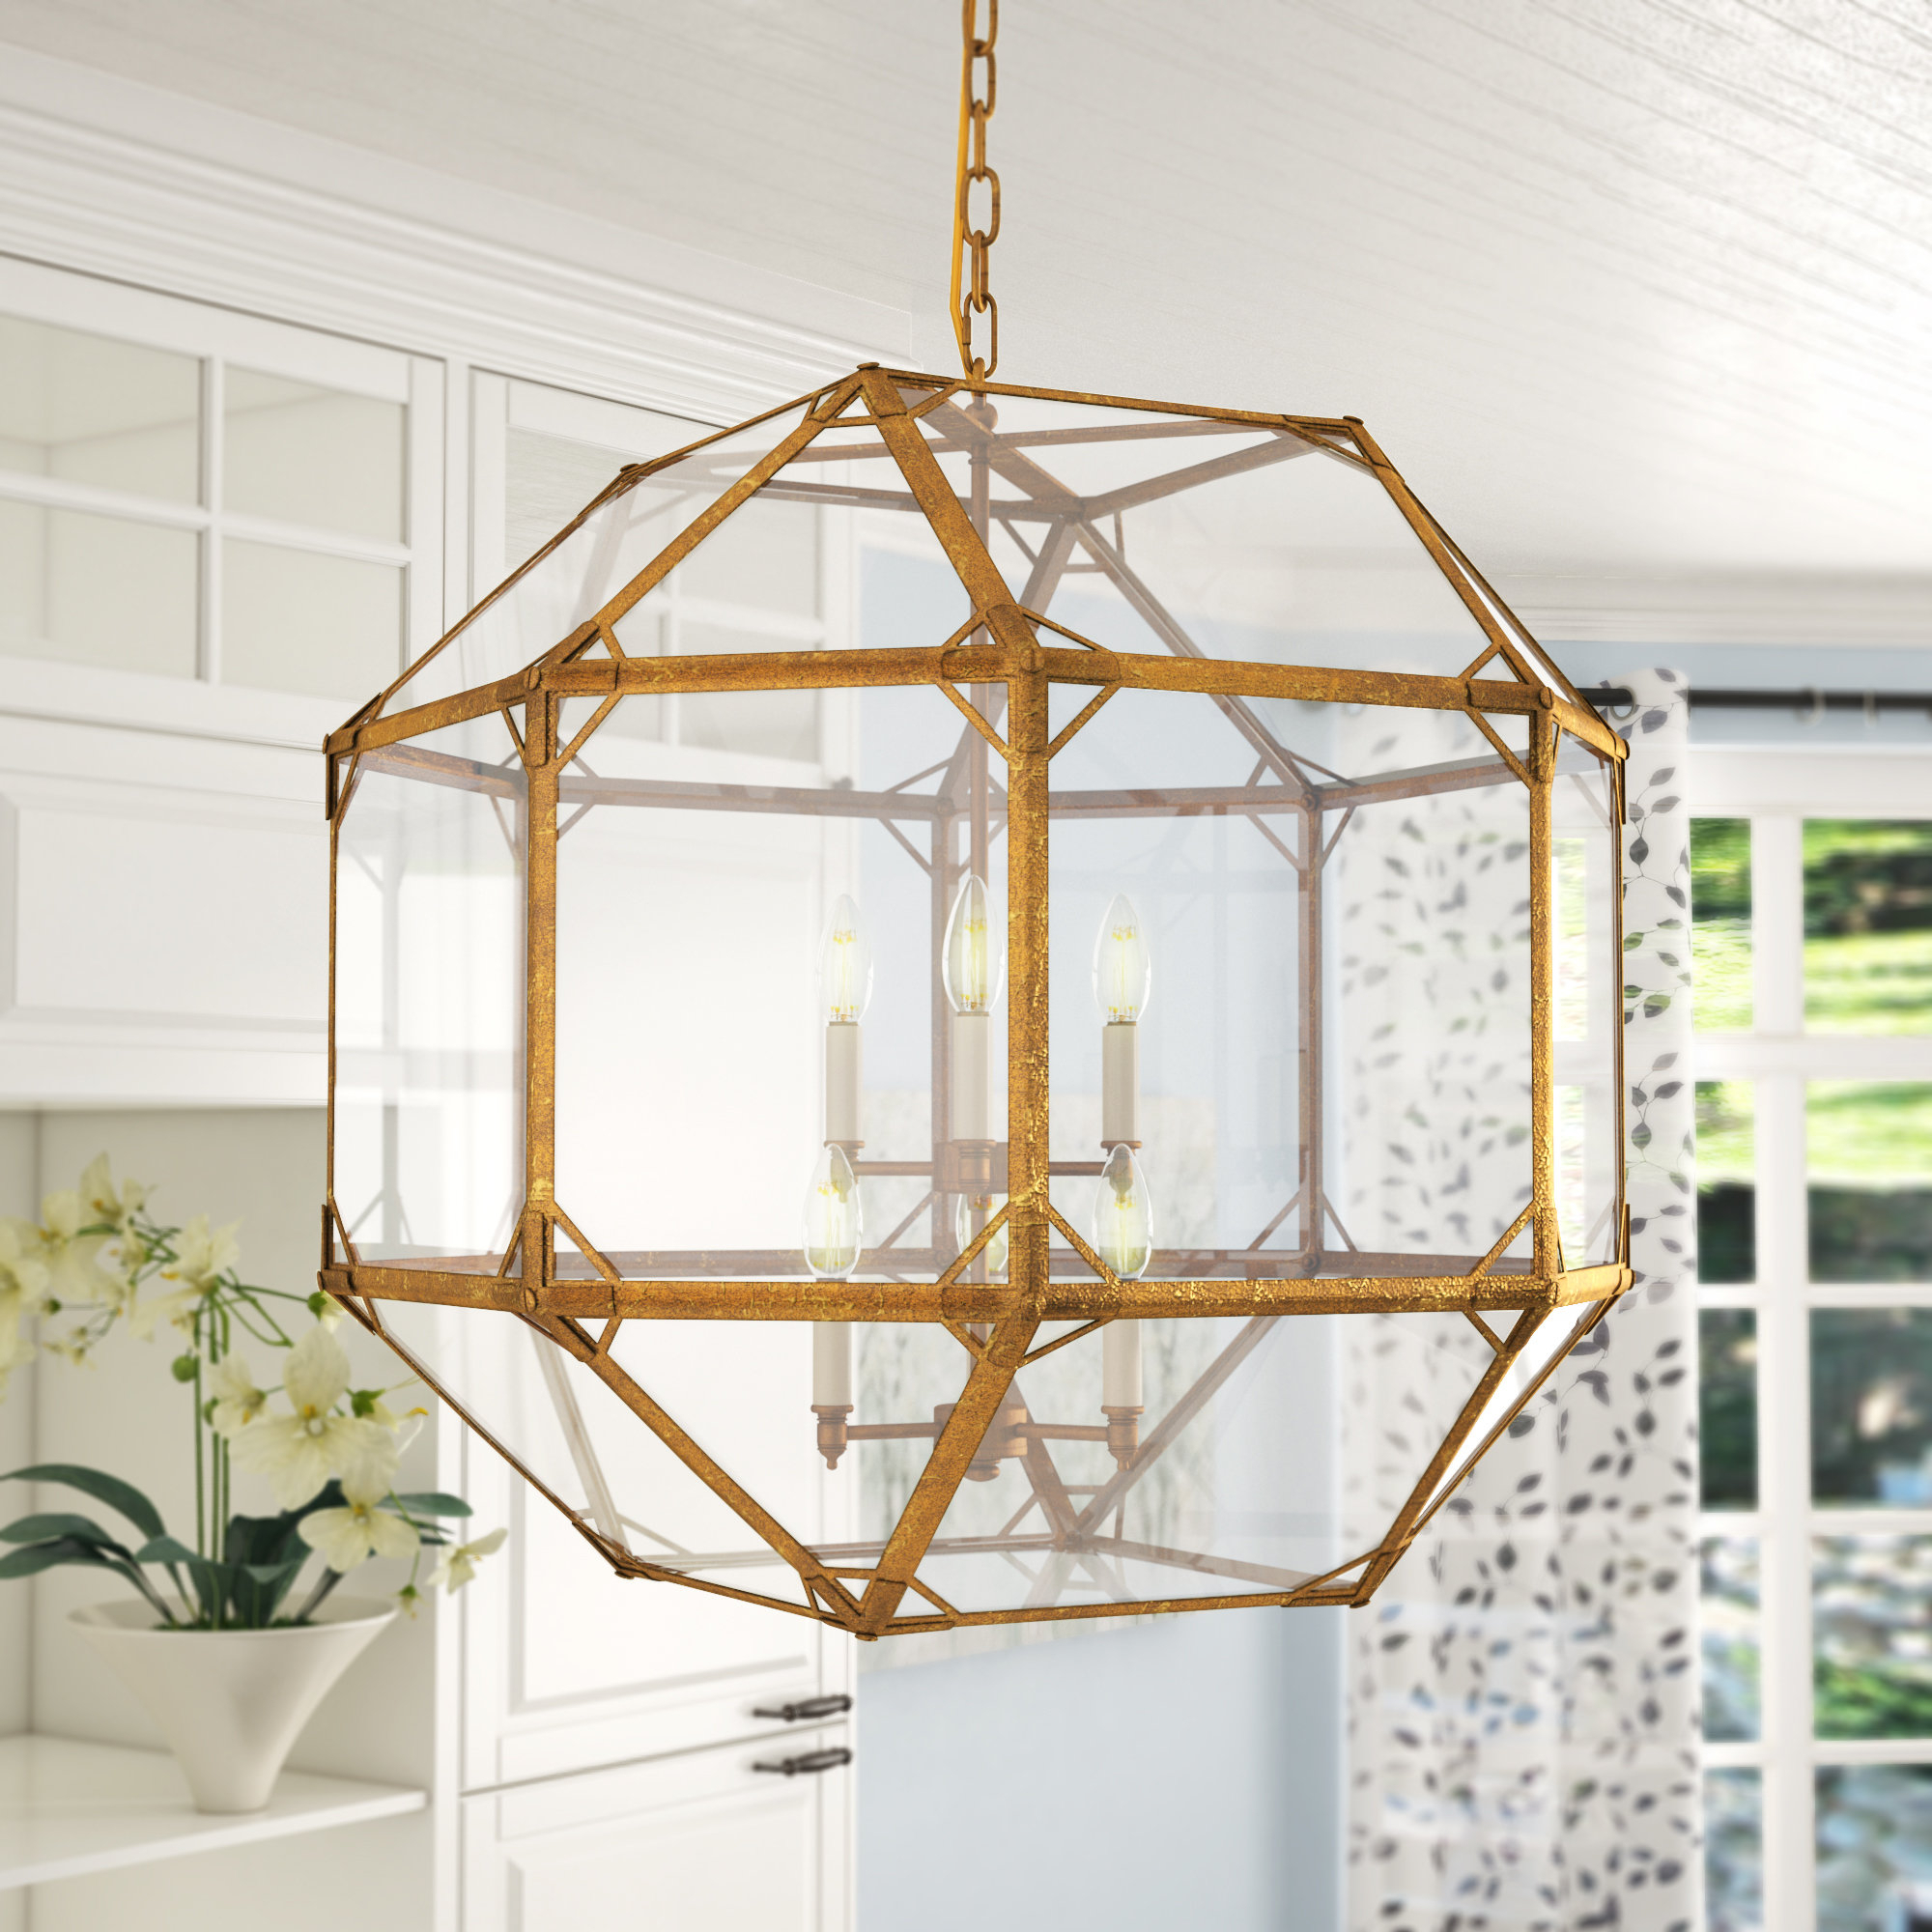 Brushed Gold Chandelier | Wayfair With Annuziata 3 Light Unique/statement Chandeliers (View 14 of 30)